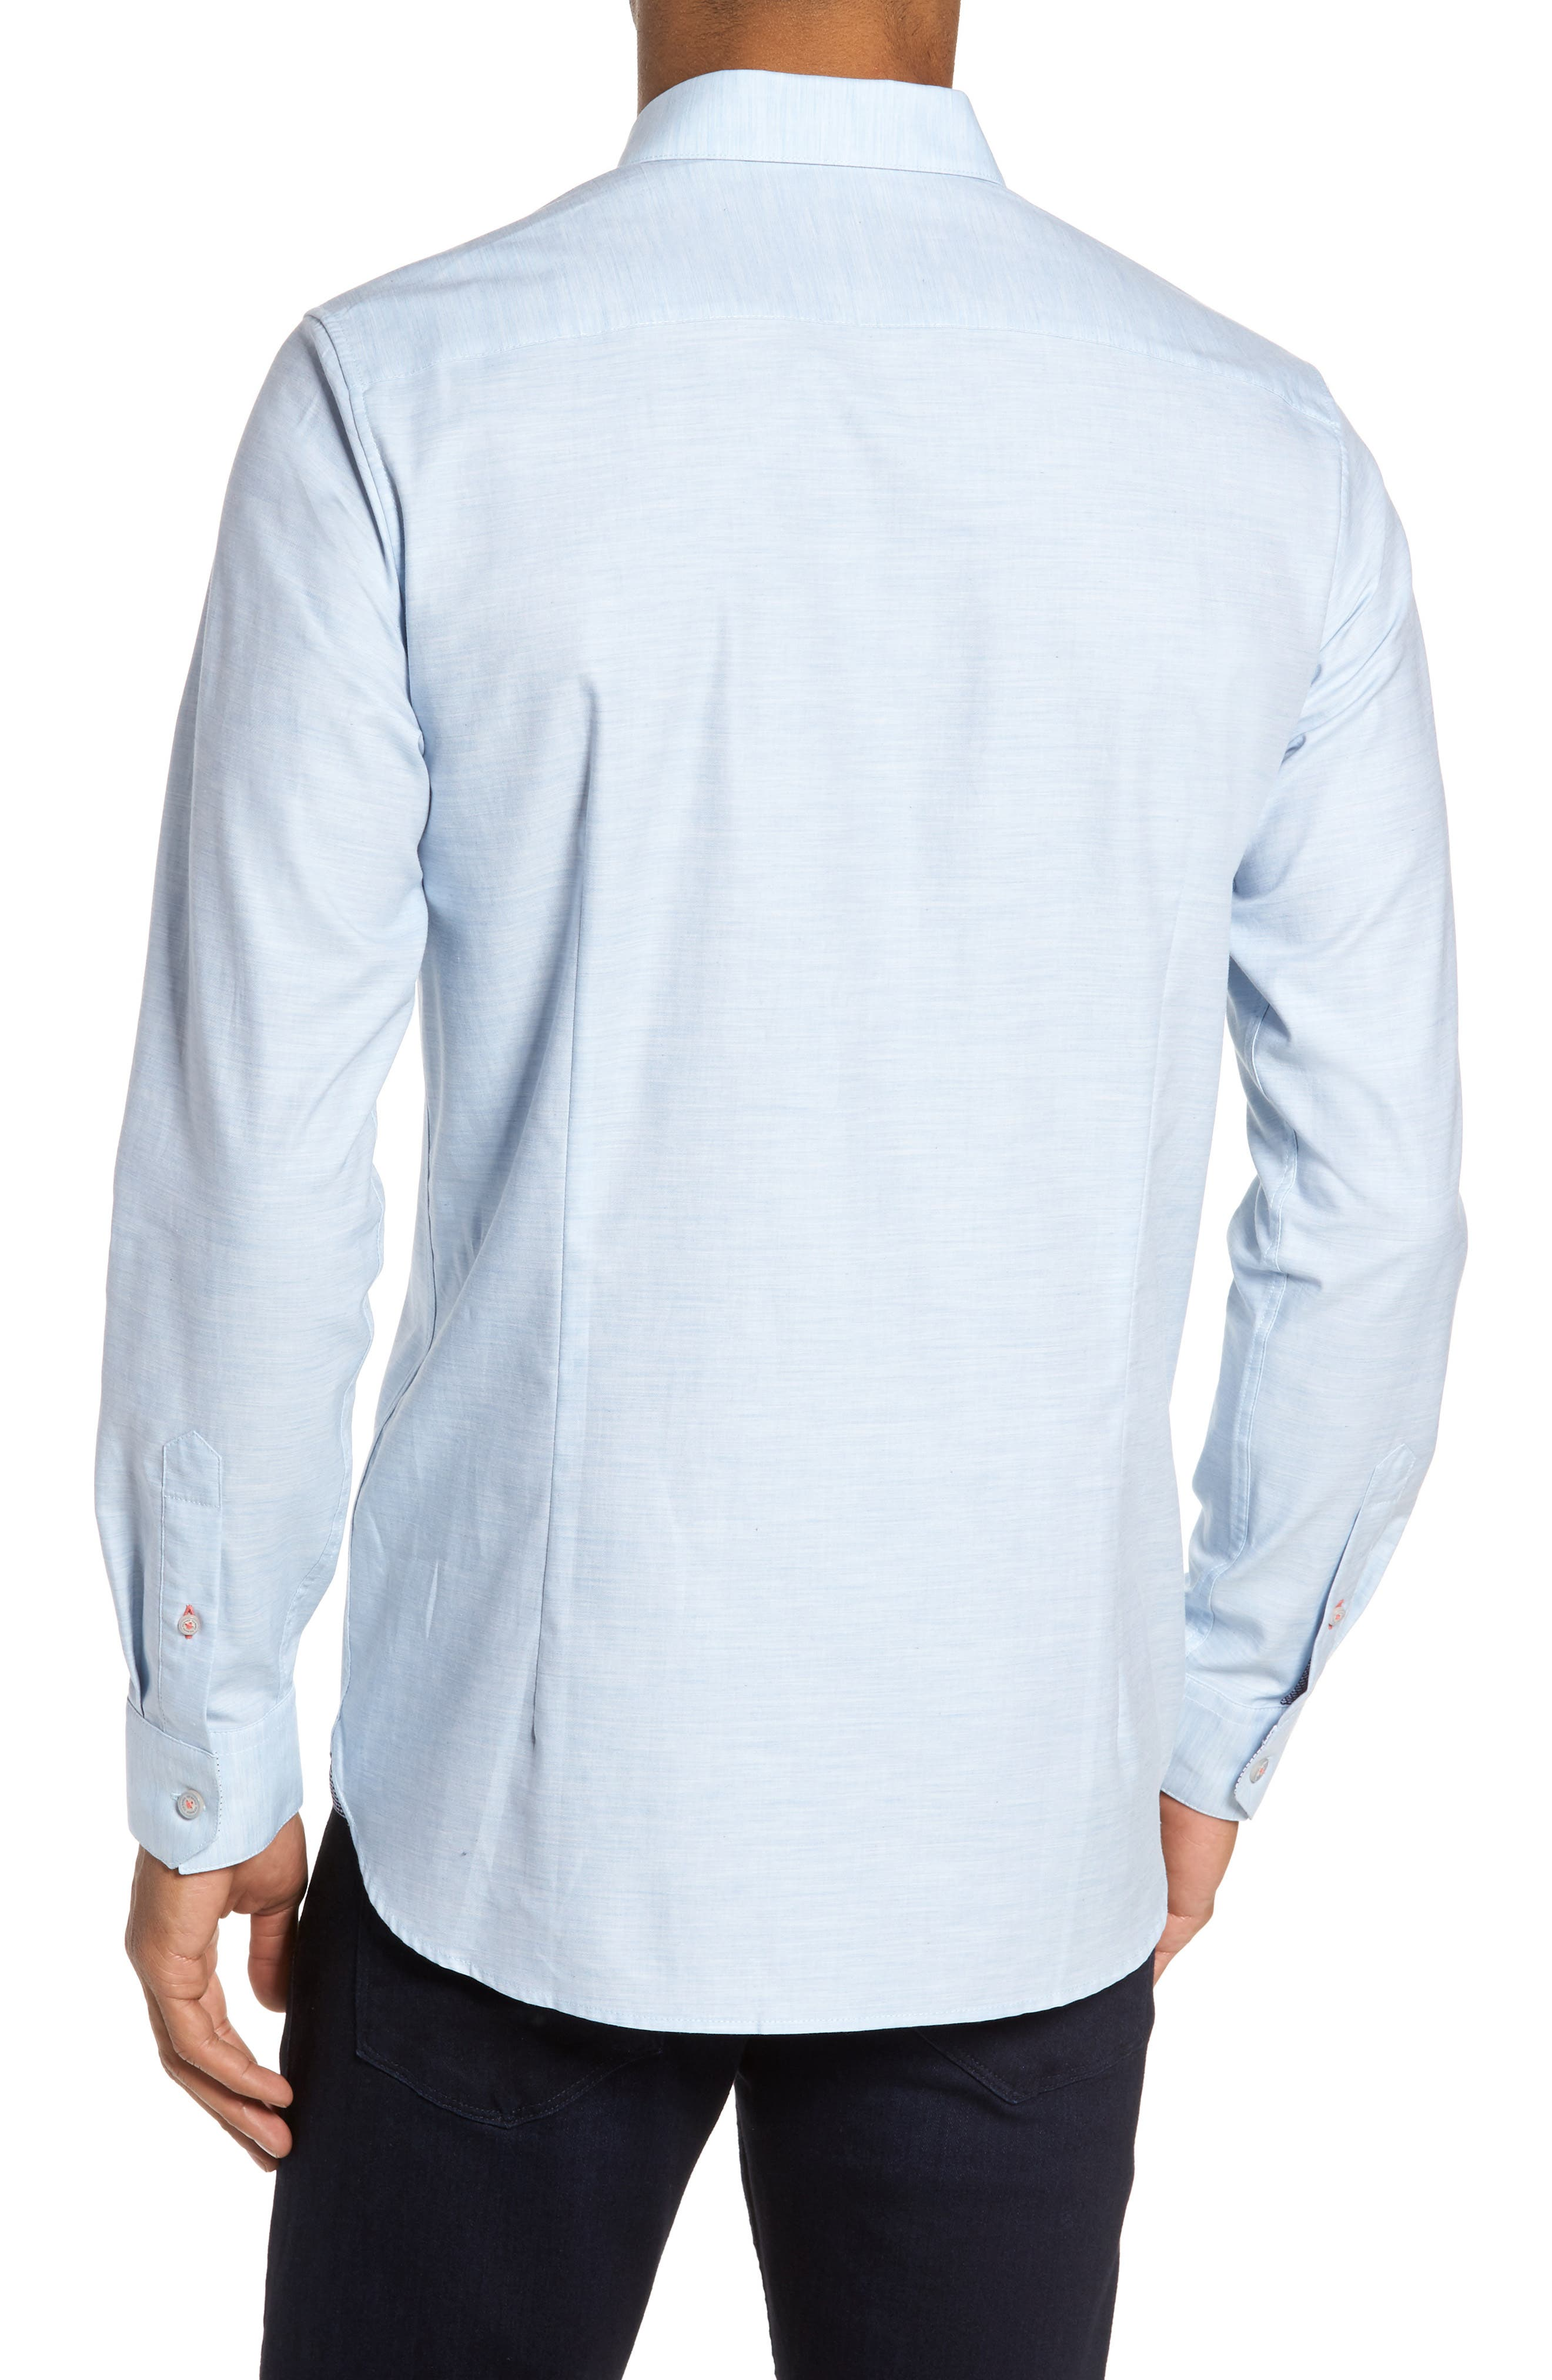 Ted Baker London Men's Casual Button-Down Shirts Clothing | Nordstrom